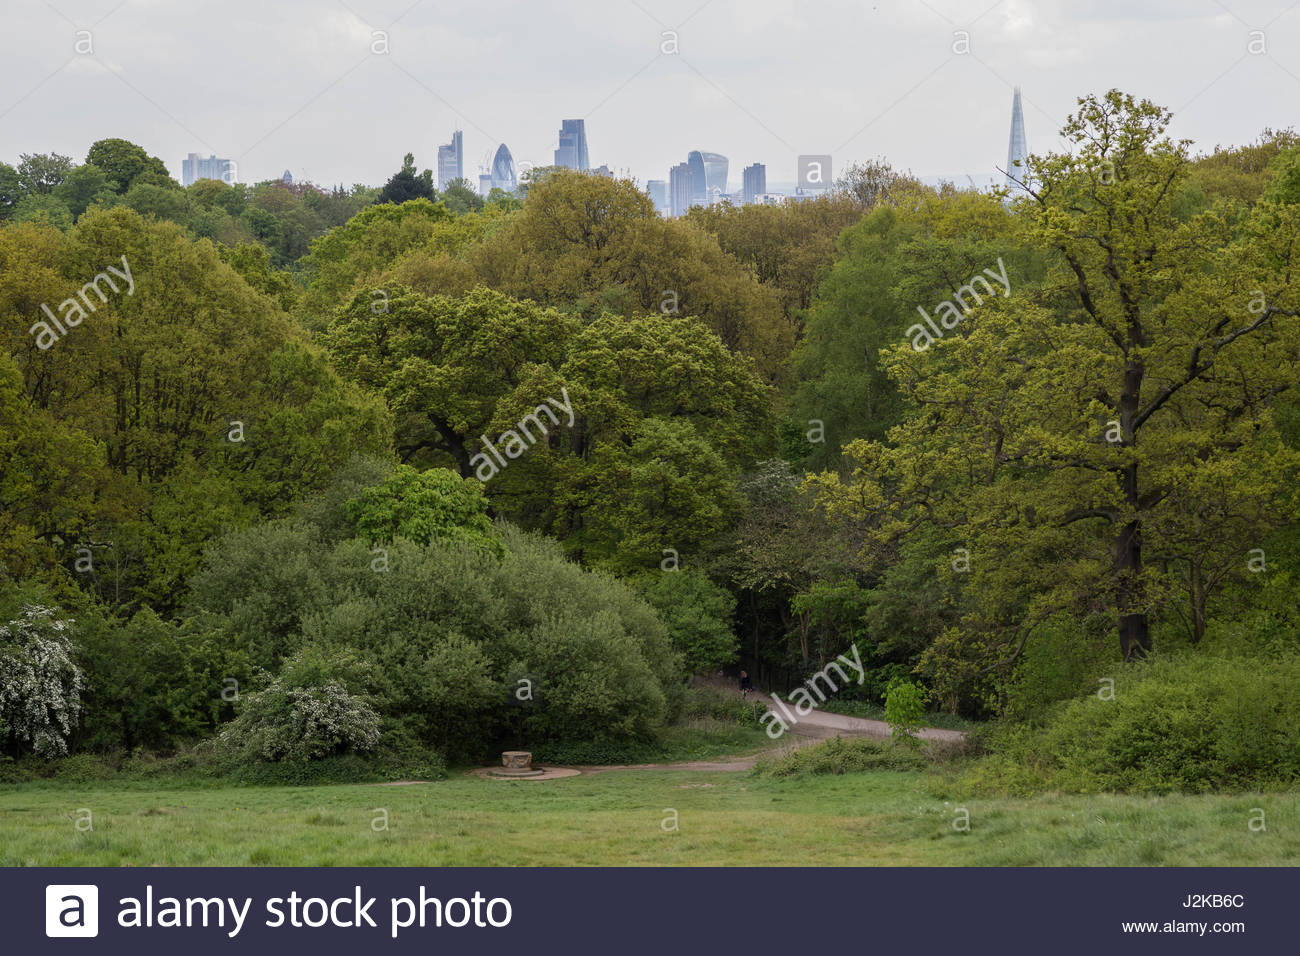 (L-R) Guerkin, Cheesegrater, Walkie-Talkie and Shard buildings seen over treetops from Hampsted Heath park in north - Stock Image